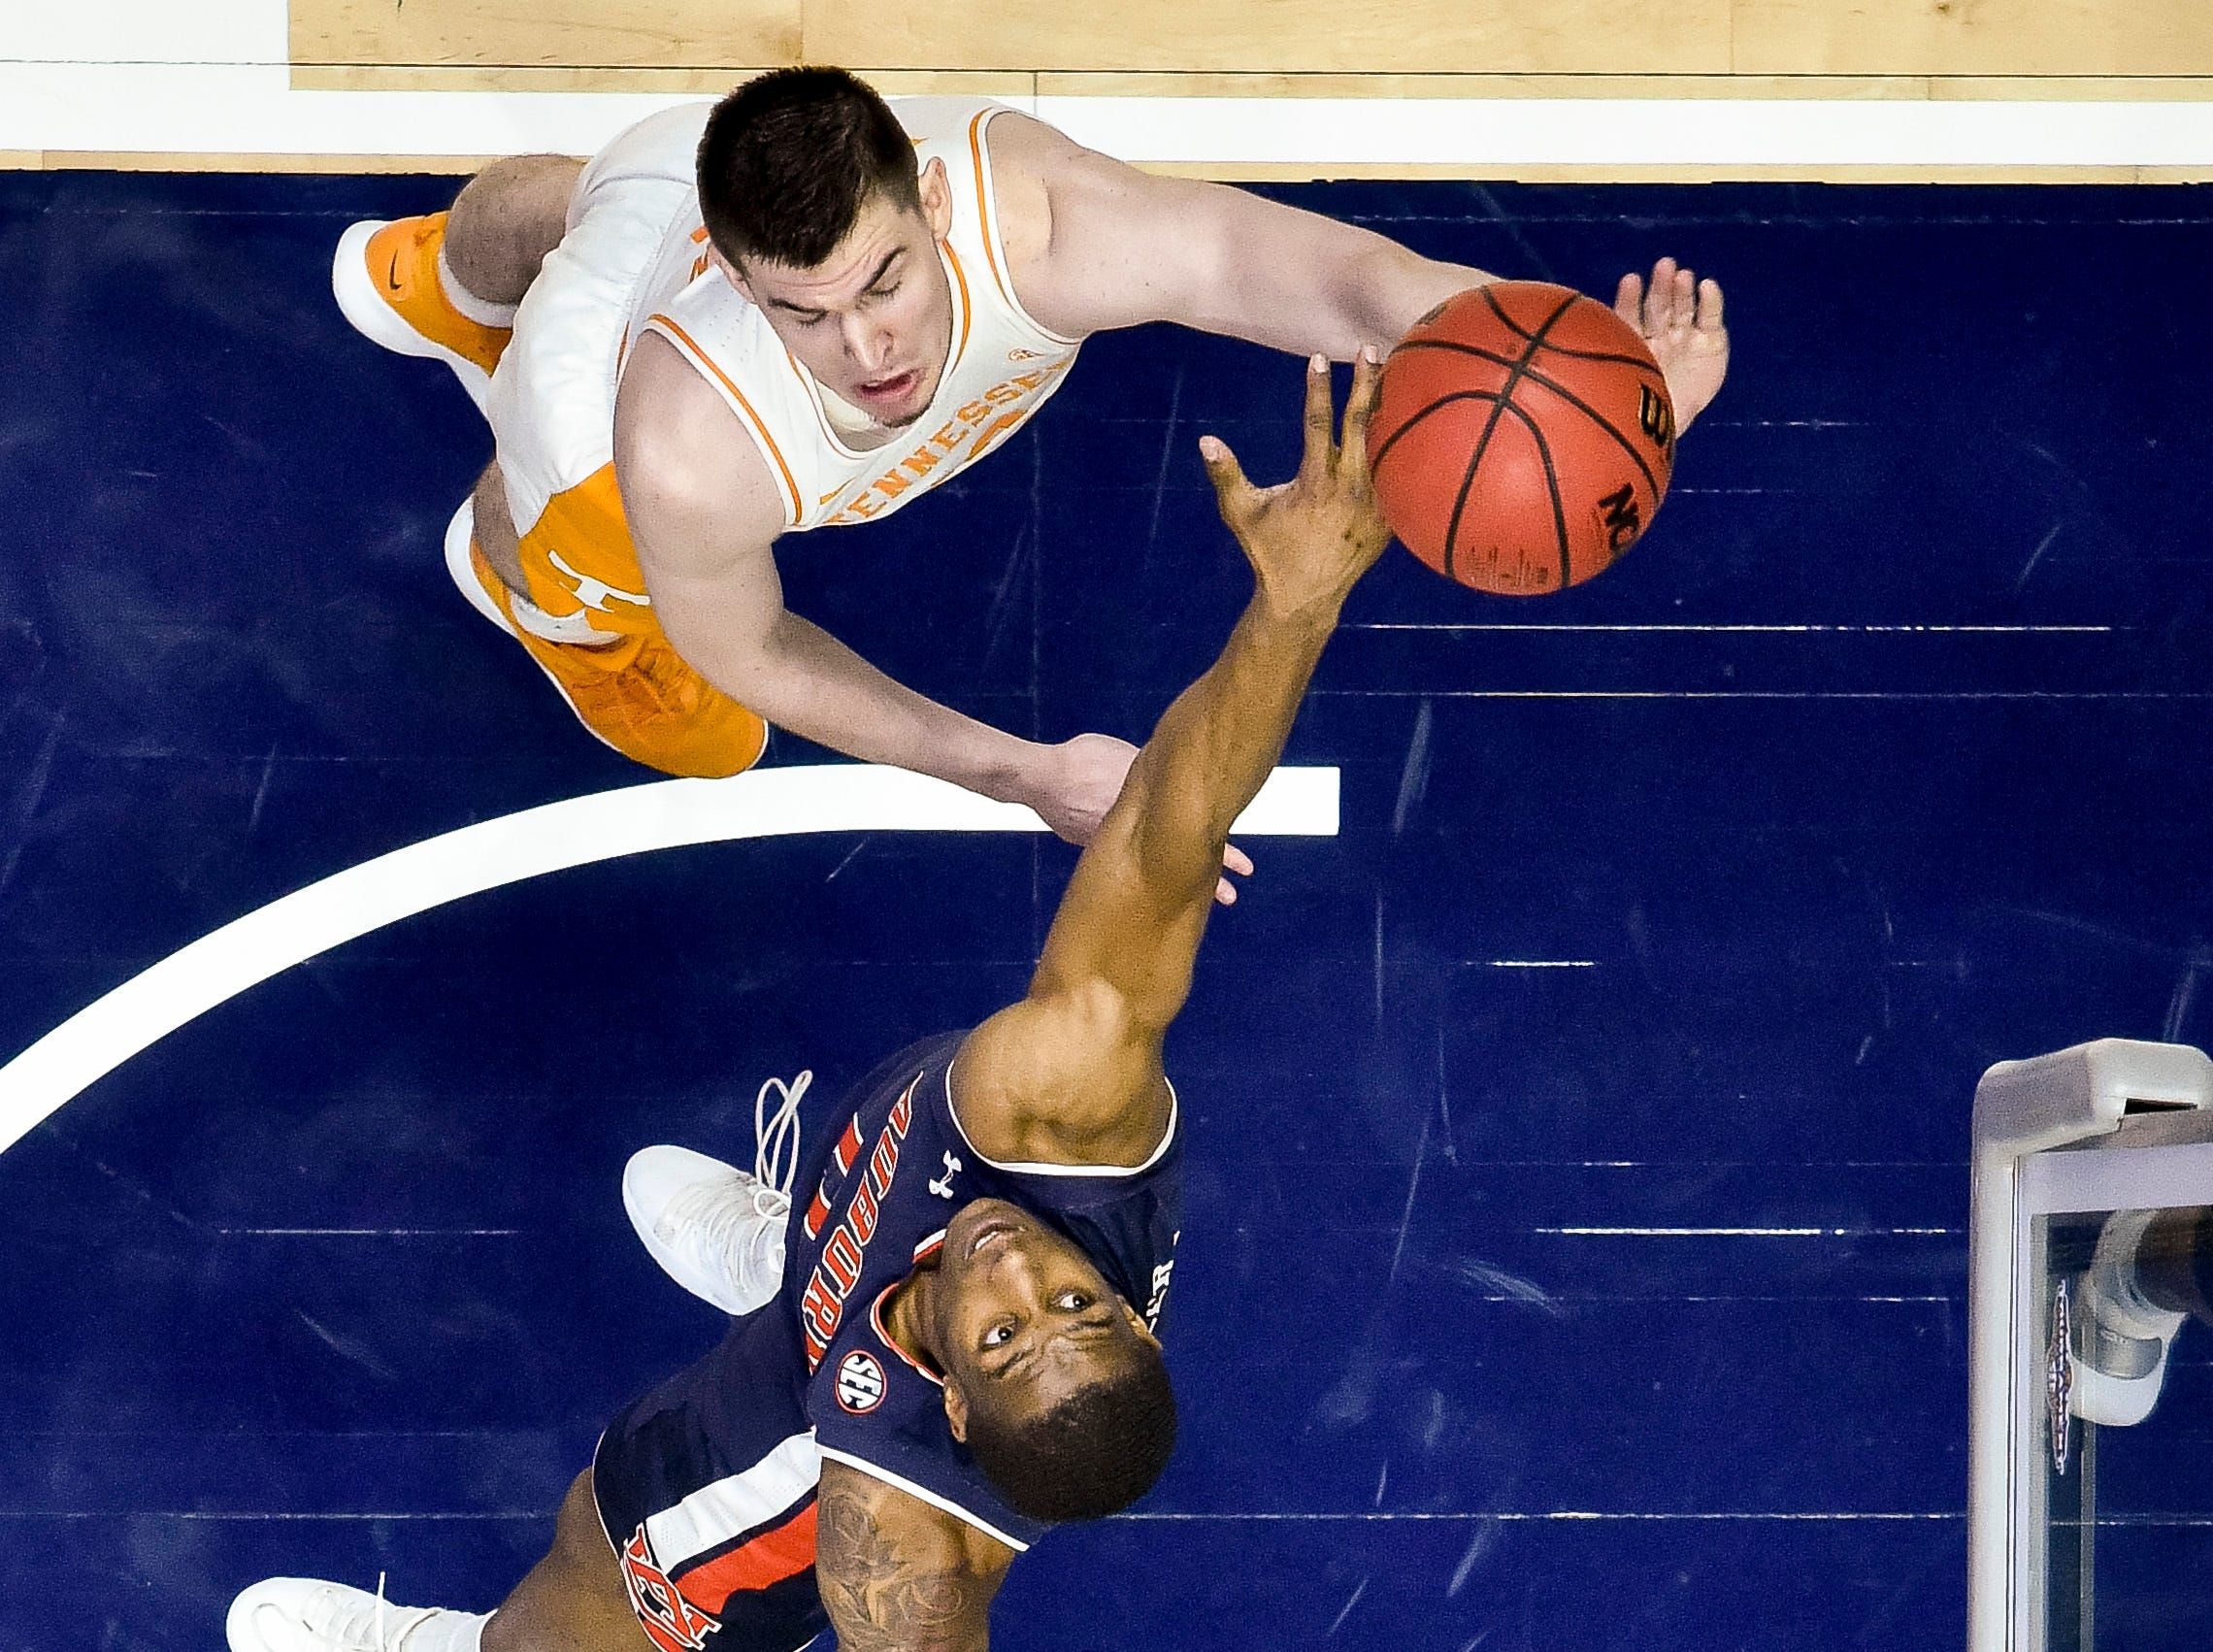 Tennessee forward John Fulkerson (10) shoots over Auburn forward Horace Spencer (0) during the first half of the SEC Men's Basketball Tournament championship game at Bridgestone Arena in Nashville, Tenn., Sunday, March 17, 2019.